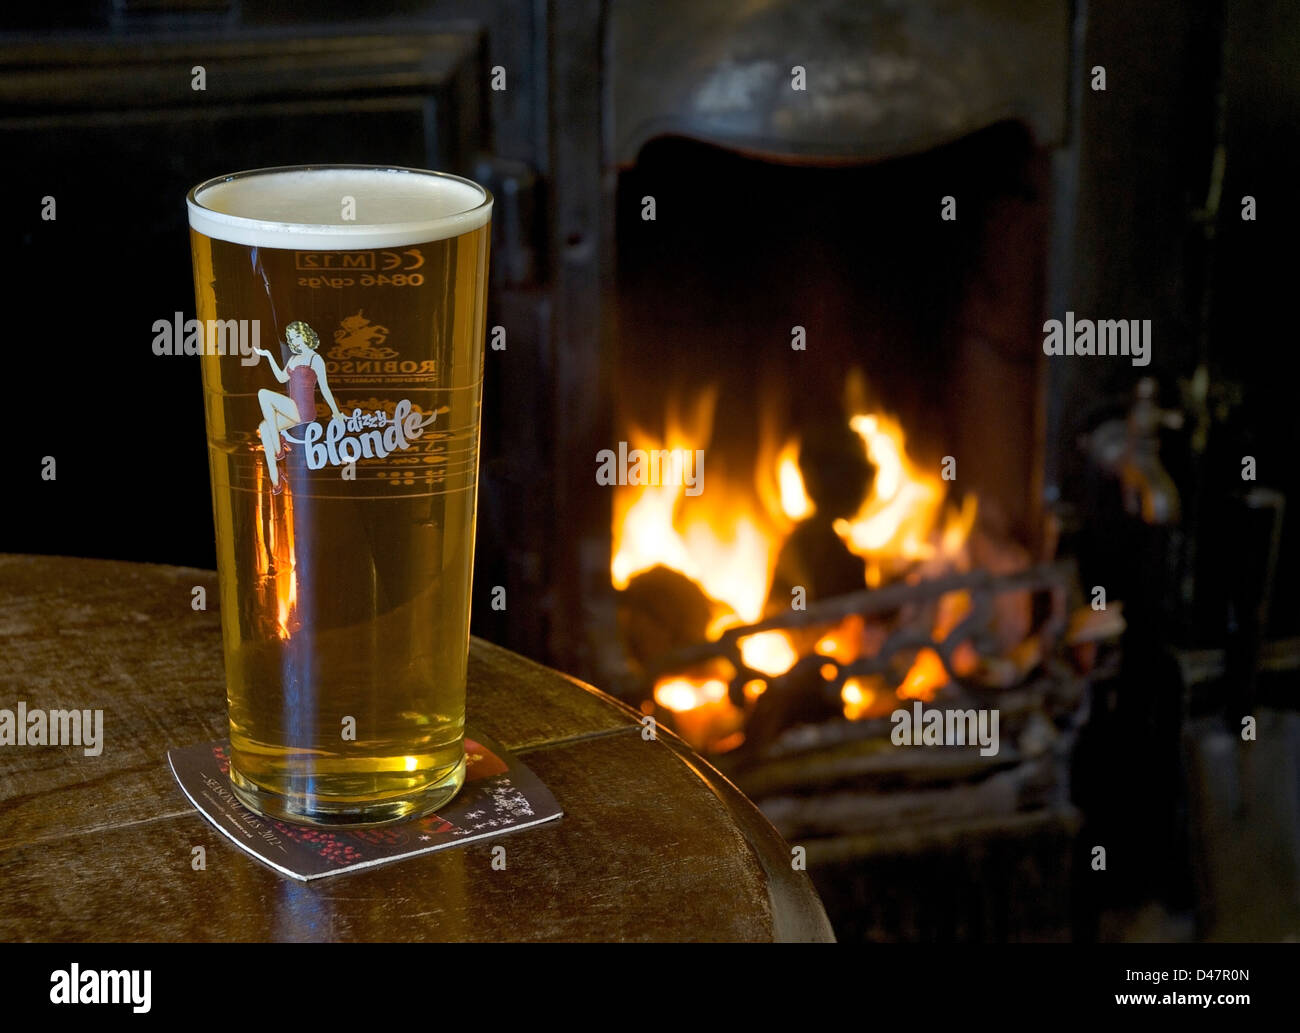 a-pint-of-dizzy-blonde-beer-on-a-pub-table-with-open-fire-in-the-background-D47R0N.jpg